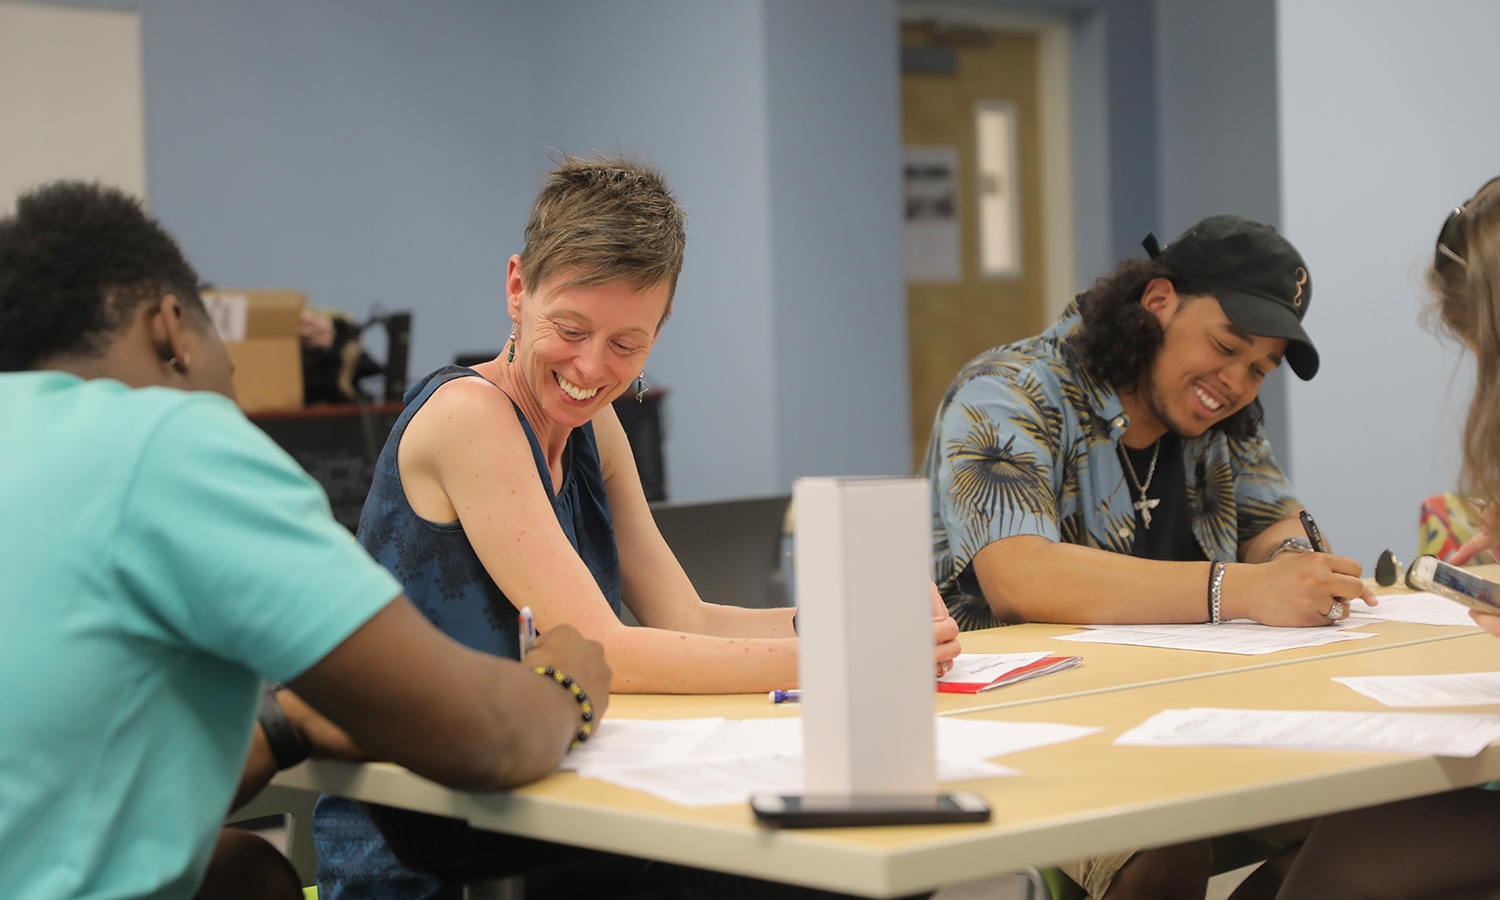 Associate Professor of Theatre Heather May reviews the mission of MOSAIC NY with new members in WIlliams Hall.